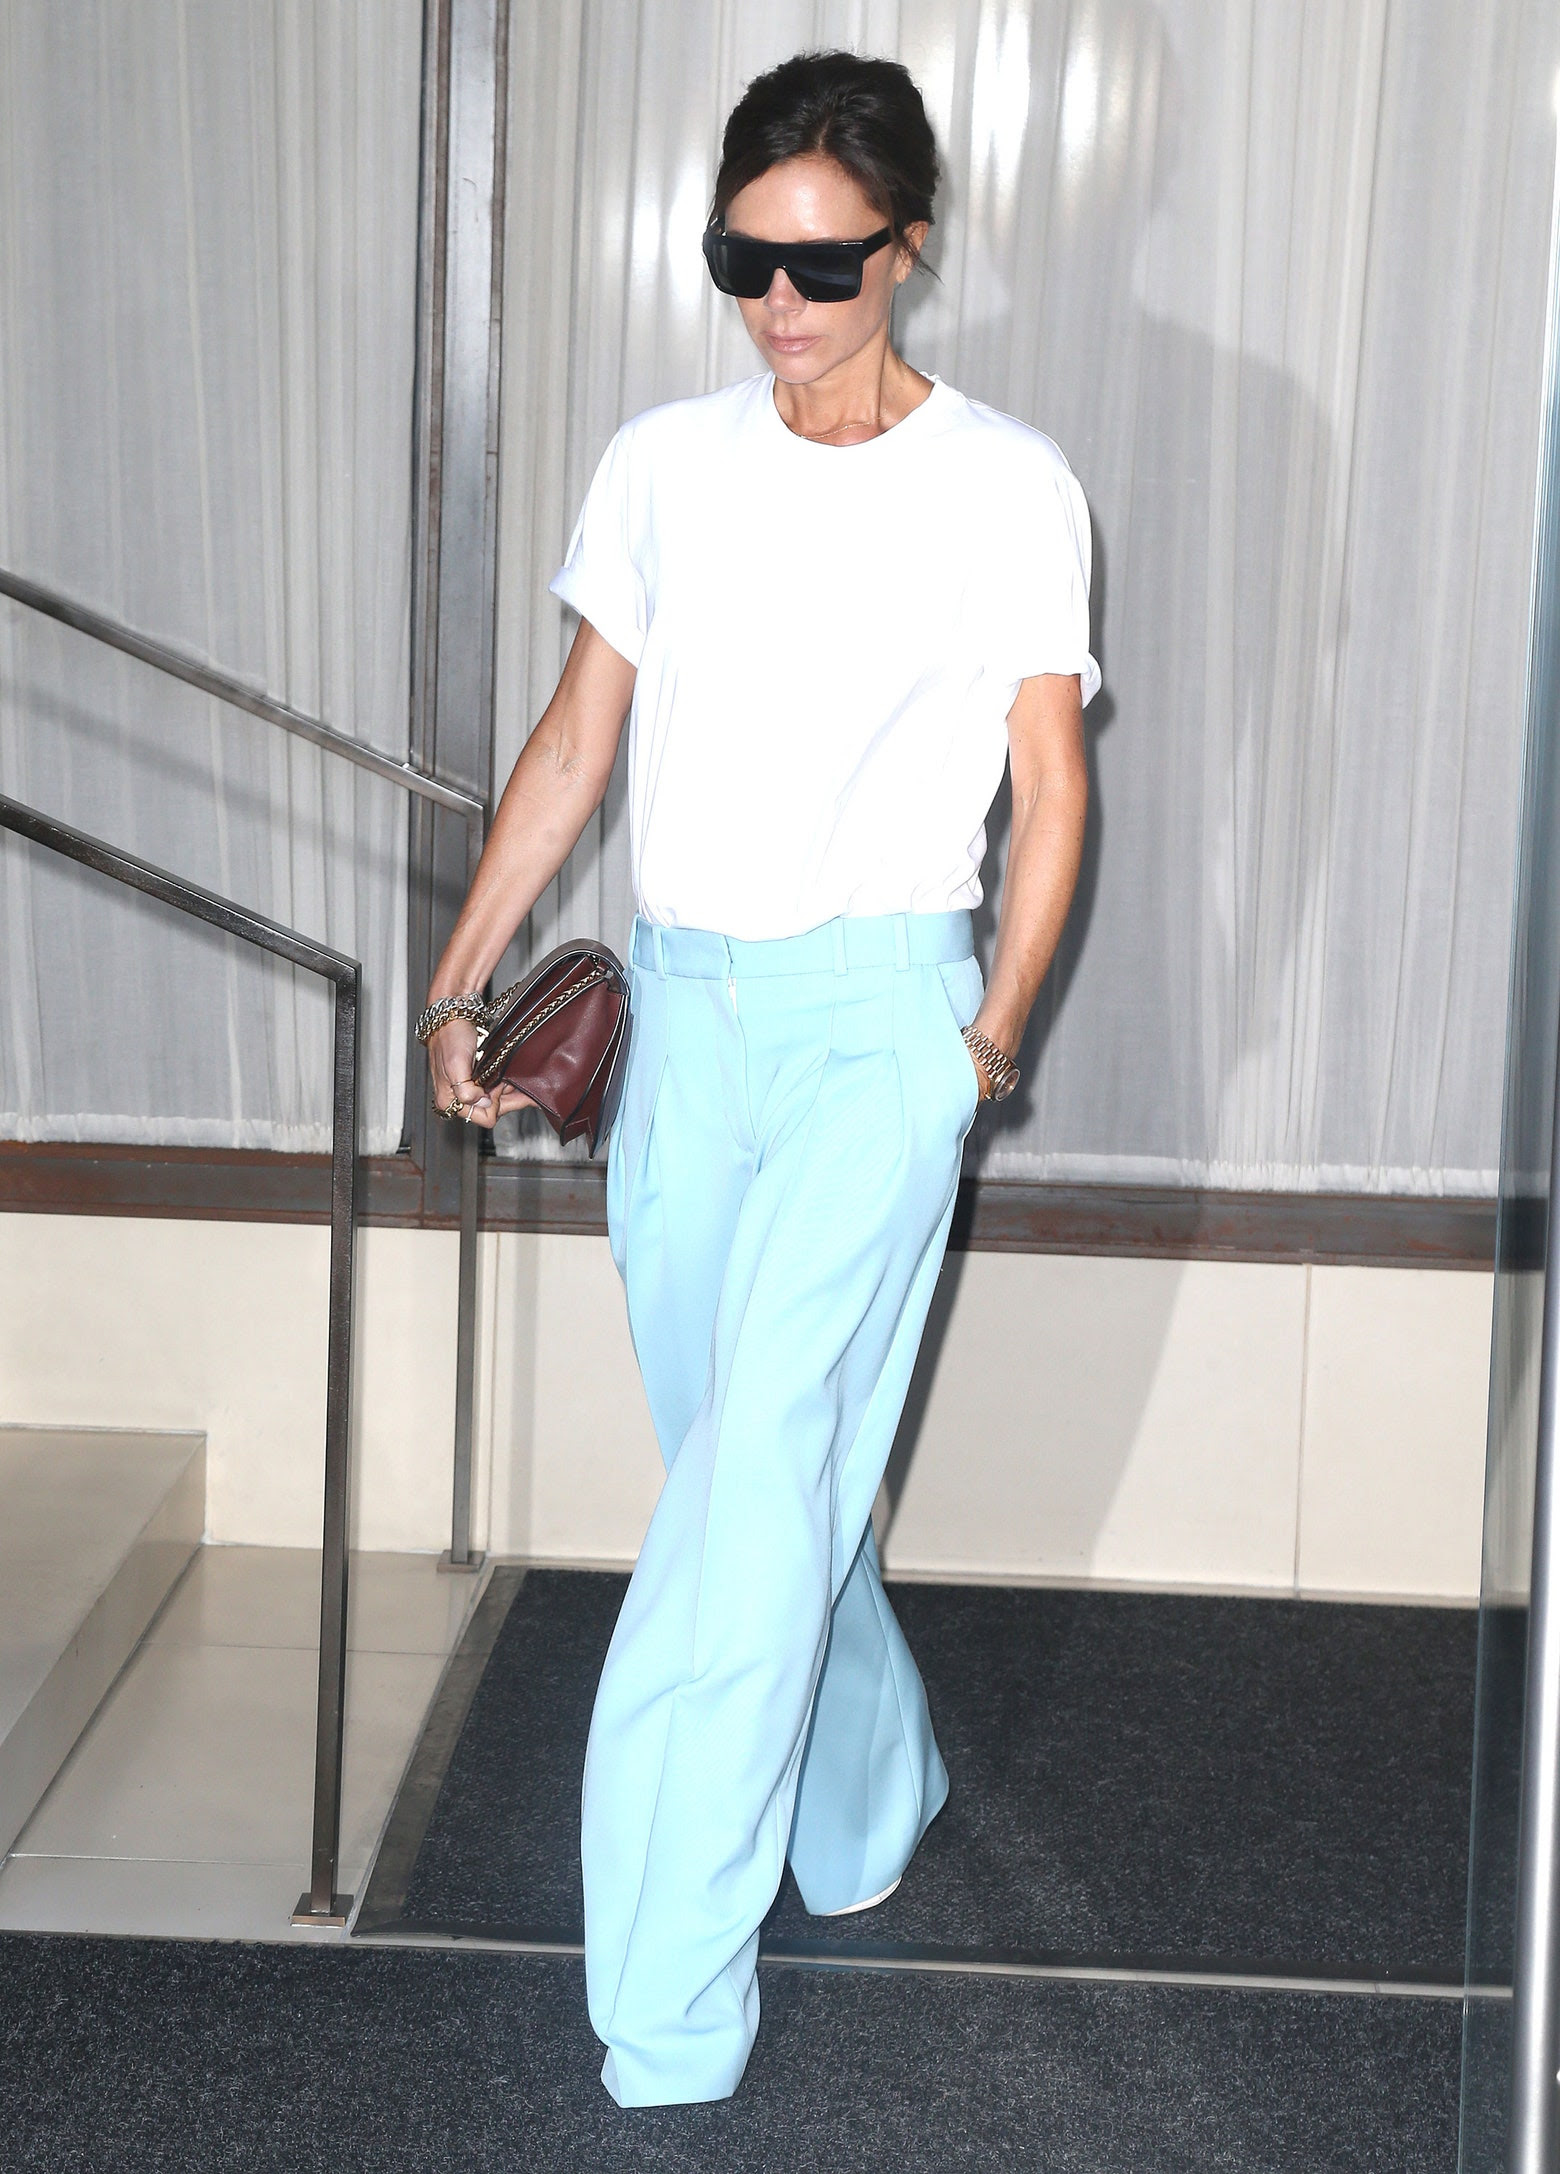 Le Fashion Blog Victoria Beckham Oversized Sunglasses White T Shirt Wide Leg Blue Pants Via Vogue